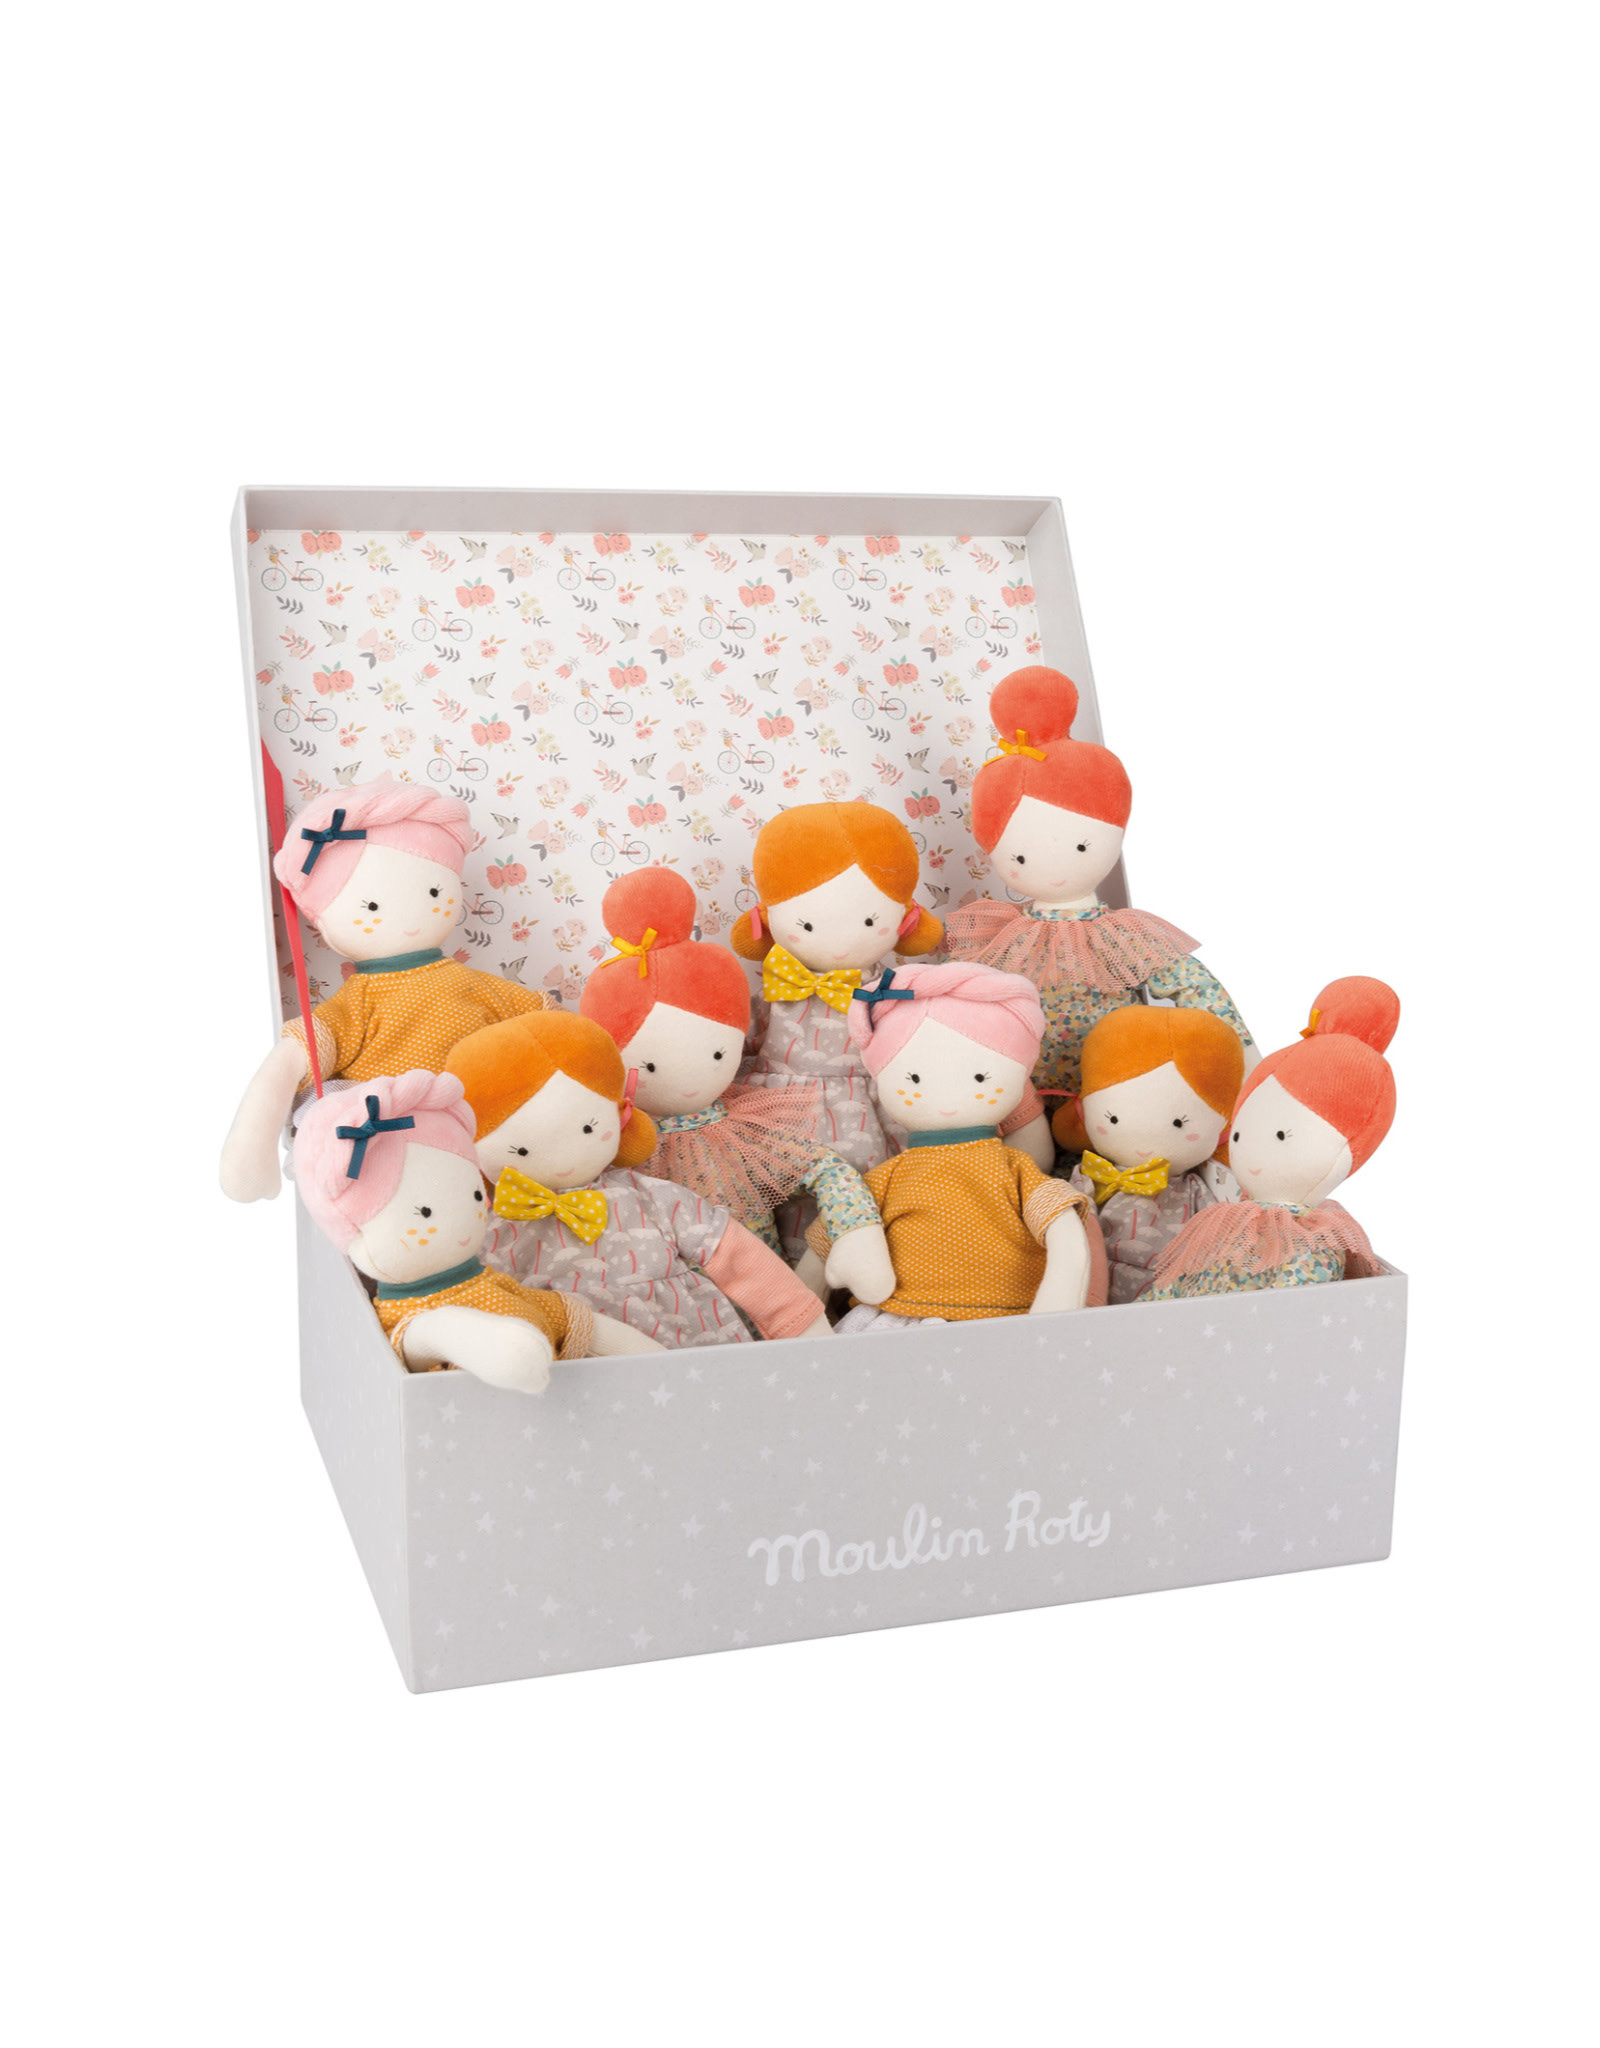 Moulin Roty Parisiennes Soft dolls - Mademoiselle Blanche